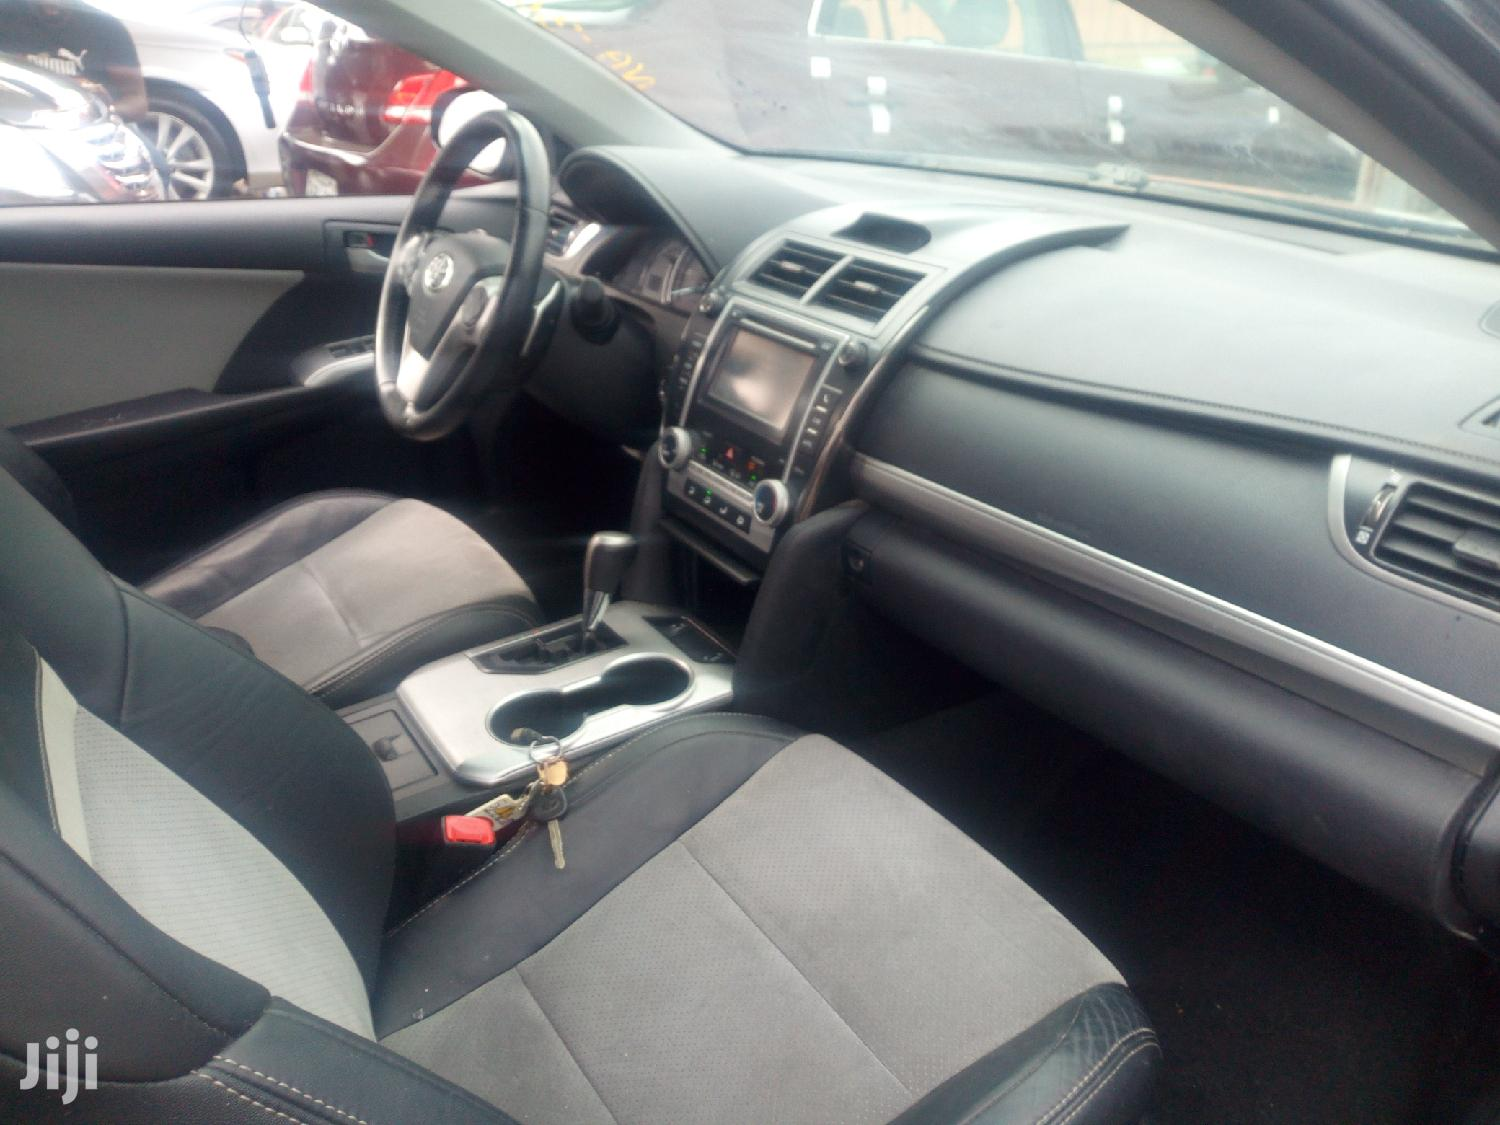 Toyota Camry 2012 Blue | Cars for sale in Amuwo-Odofin, Lagos State, Nigeria